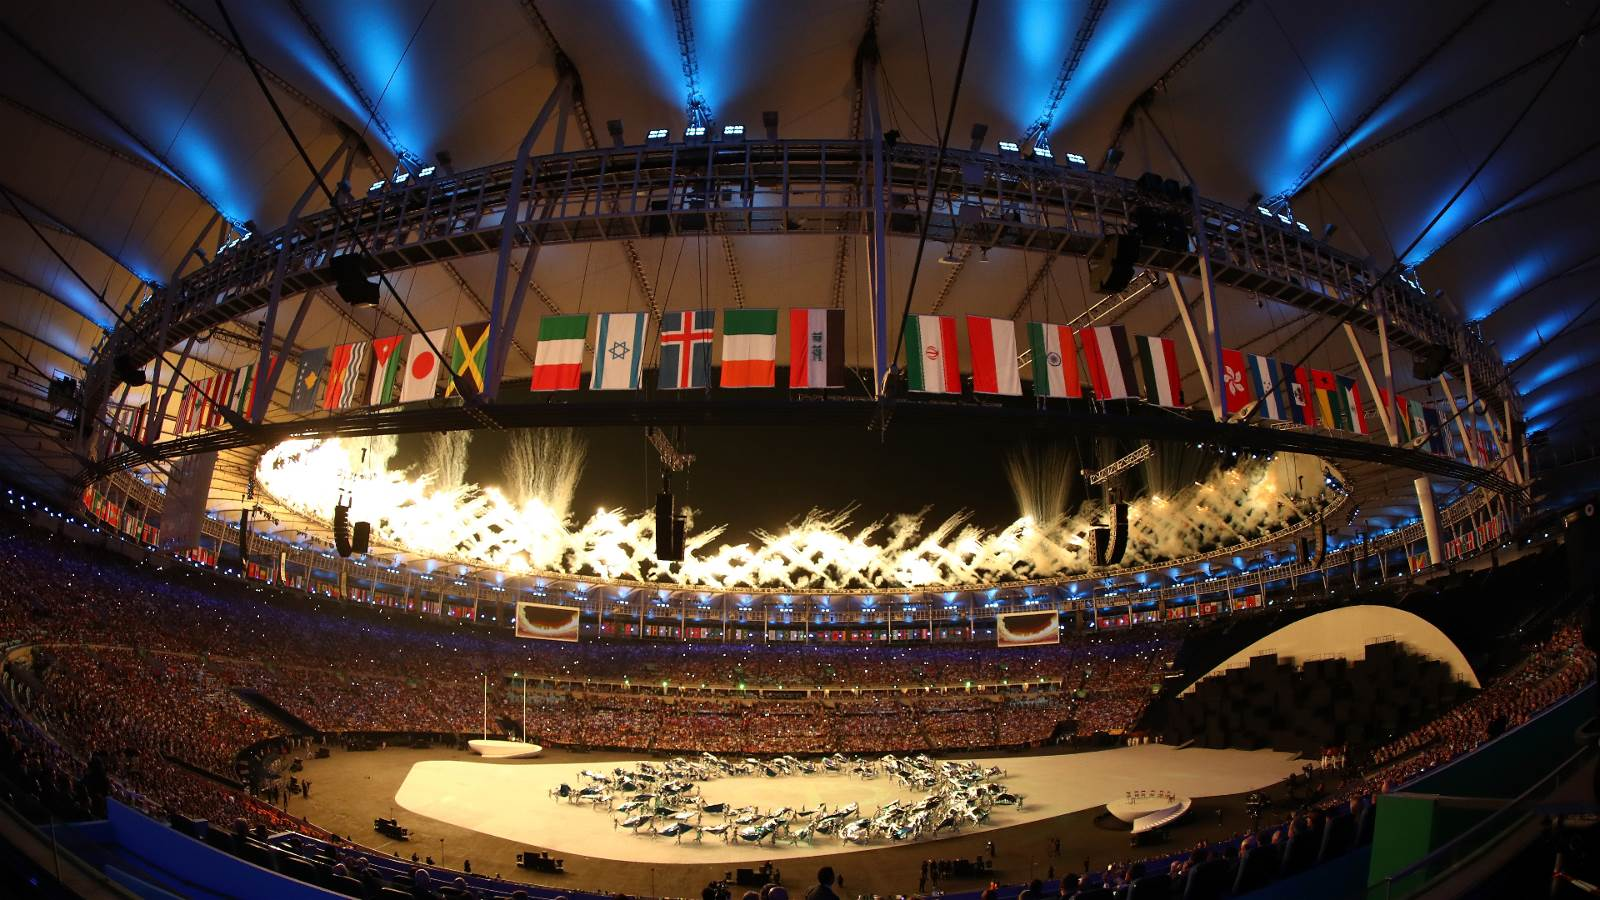 The Rio 2016 Olympic Games Opening Ceremony begins at the Maracanã stadium under the flags of all the competing nations. Credits: (Getty Images/Clive Mason)